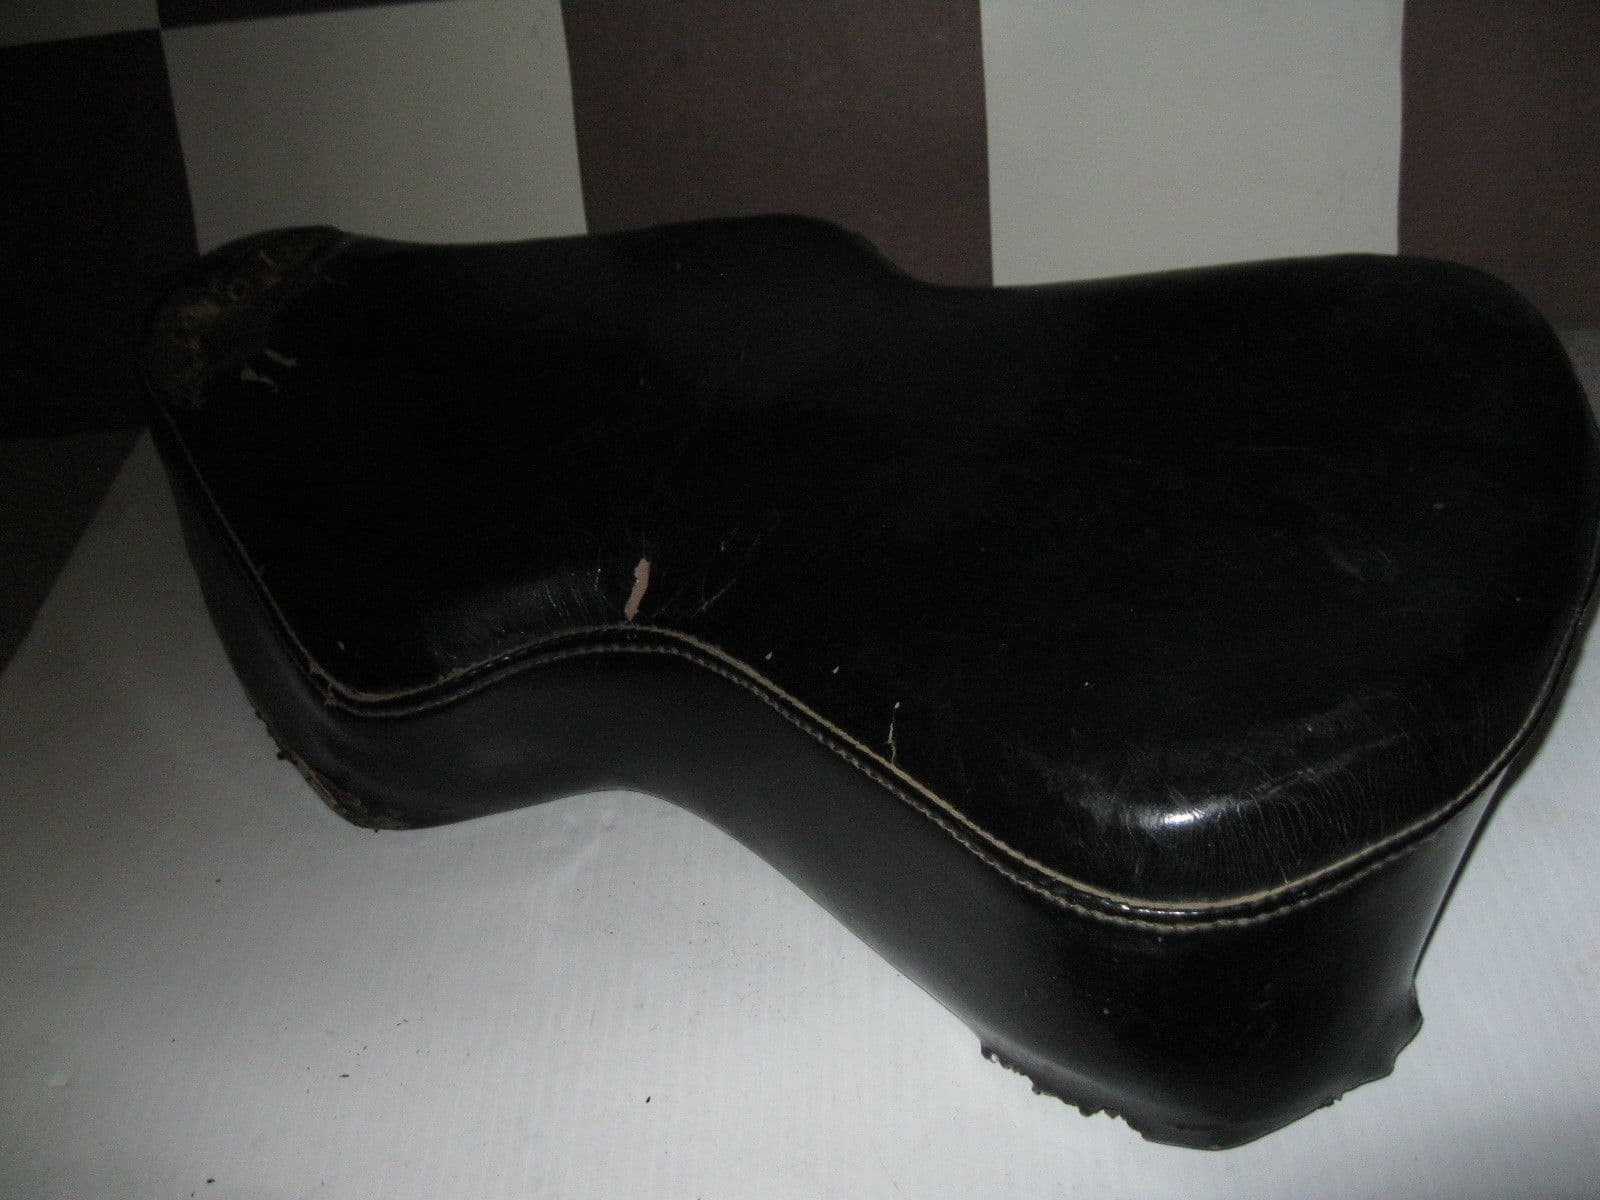 28f7521 Sears Allstate 175 and 250 Bates Seat